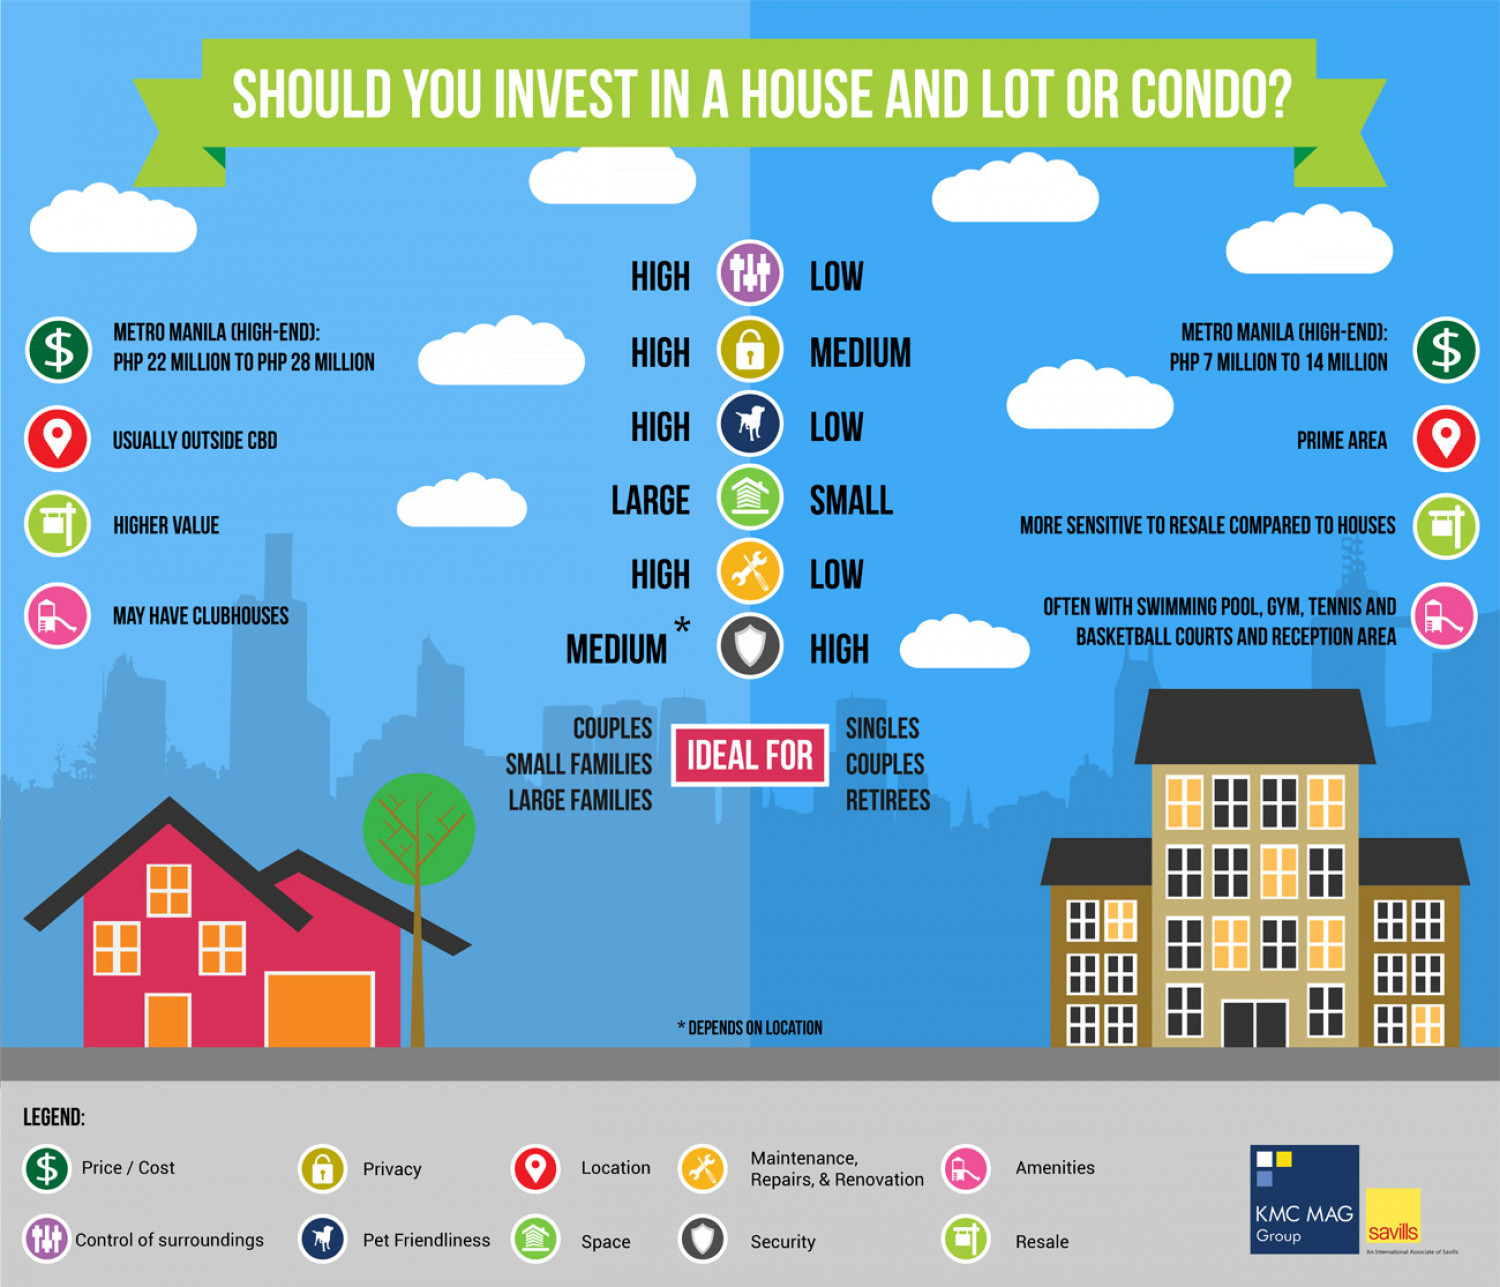 Should You Invest in a House and Lot or Condo? Infographic